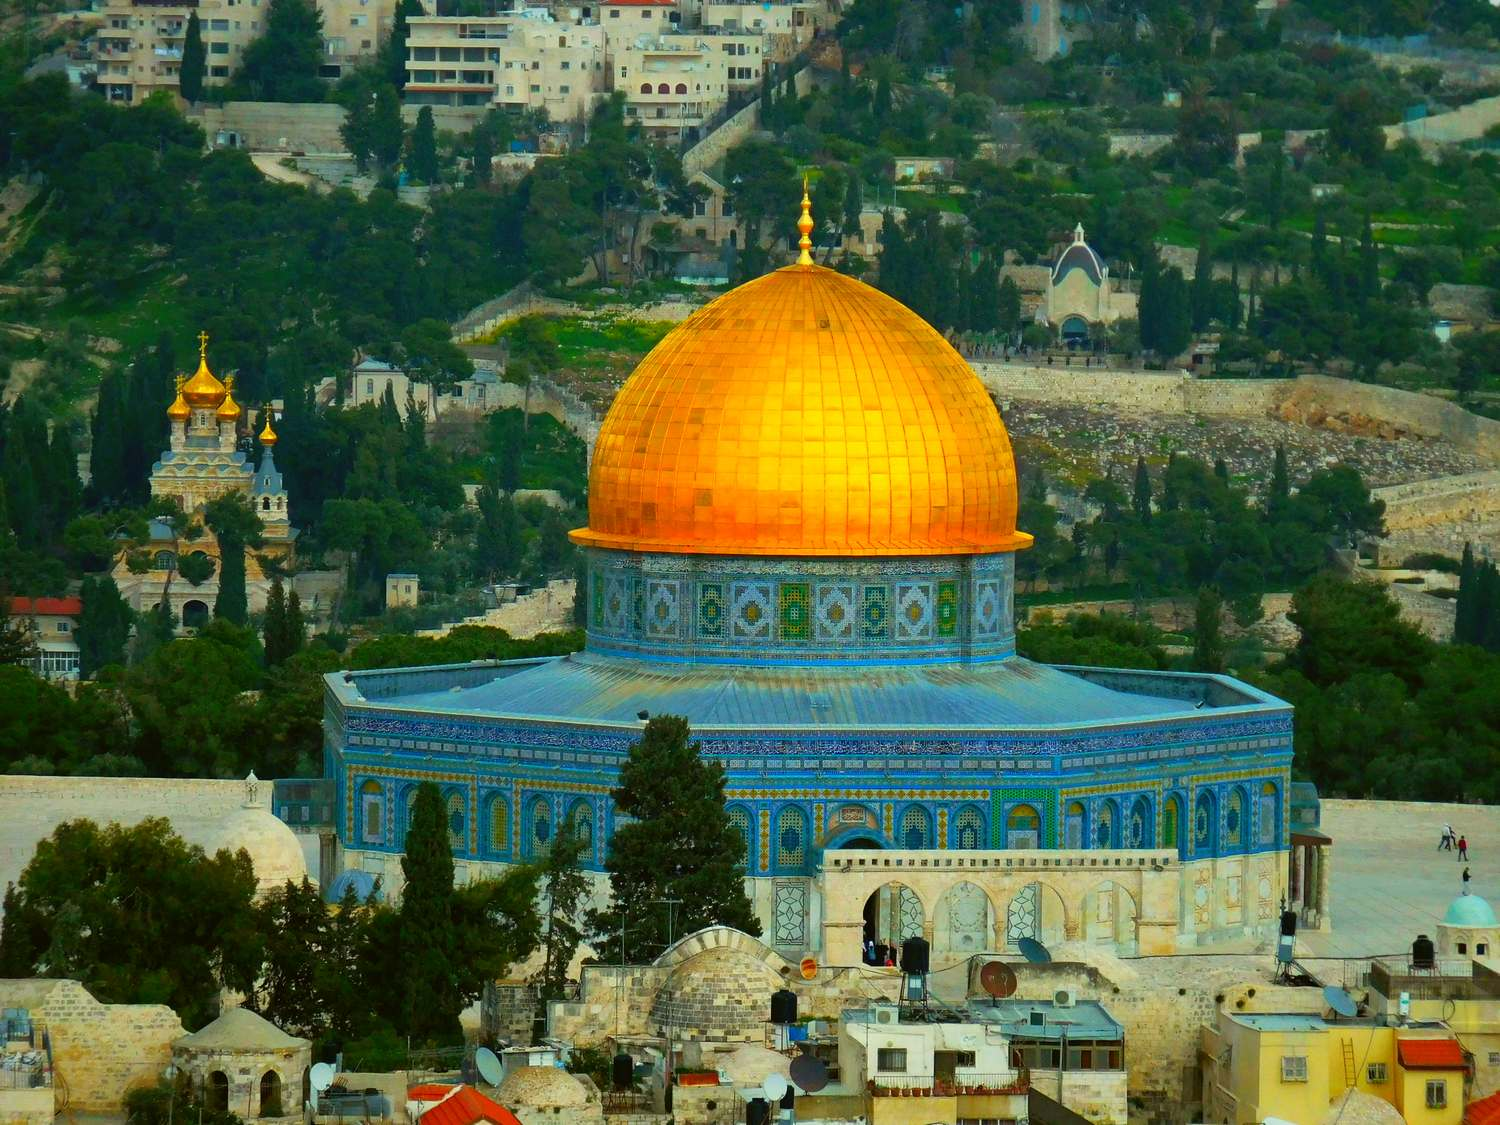 Dome of the rock in jerusalem pictures Poster of Jewish Temple, without Dome of the Rock